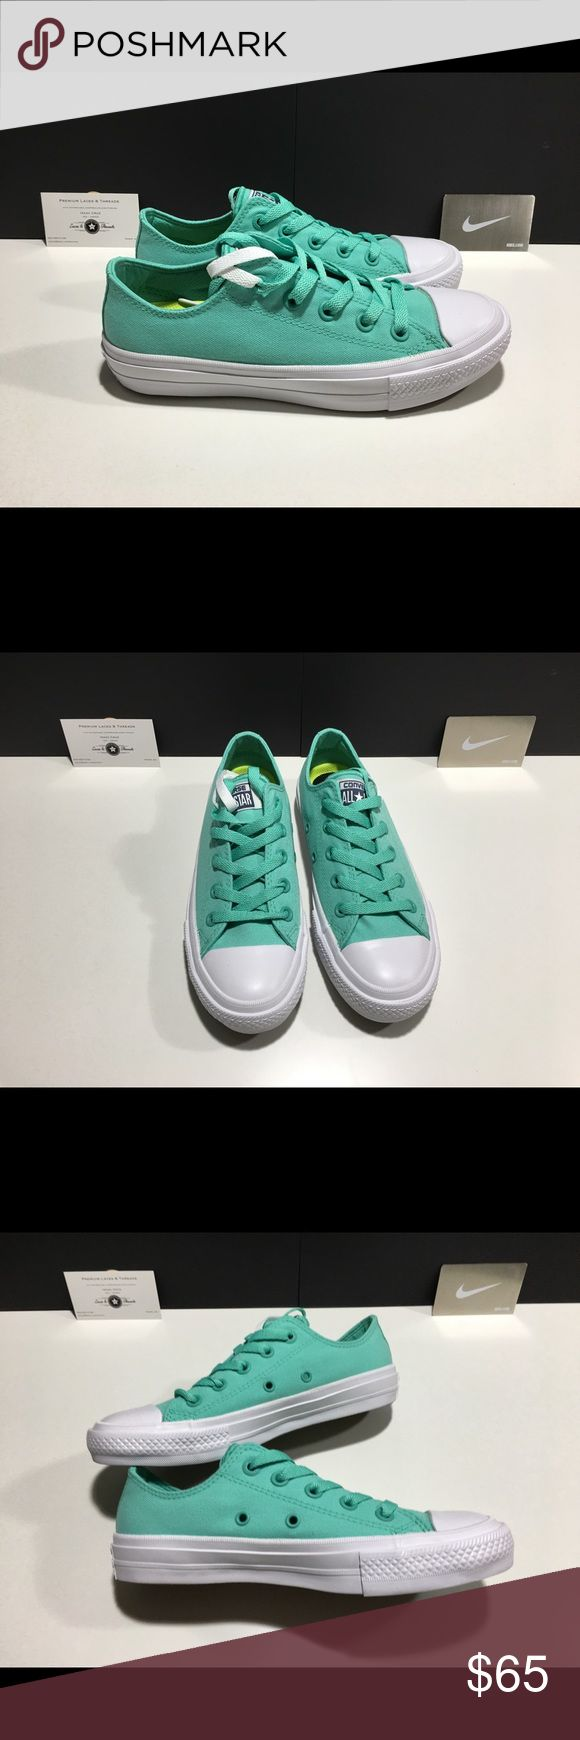 Women's Converse Chuck Taylor 2 ox TEAL NEW IN BOX 💯% authentic, directly from Nike/Converse.  ✅Brand New. Box is missing the lid. See pictures.   ✅Will Ship Out Next Day (Mon-Fri) ✅Open to Fair Offers ✅Send any other ❓my way! 🚫No Trades unfortunately                          Thanks for looking! ✌🏻. Converse Shoes Athletic Shoes